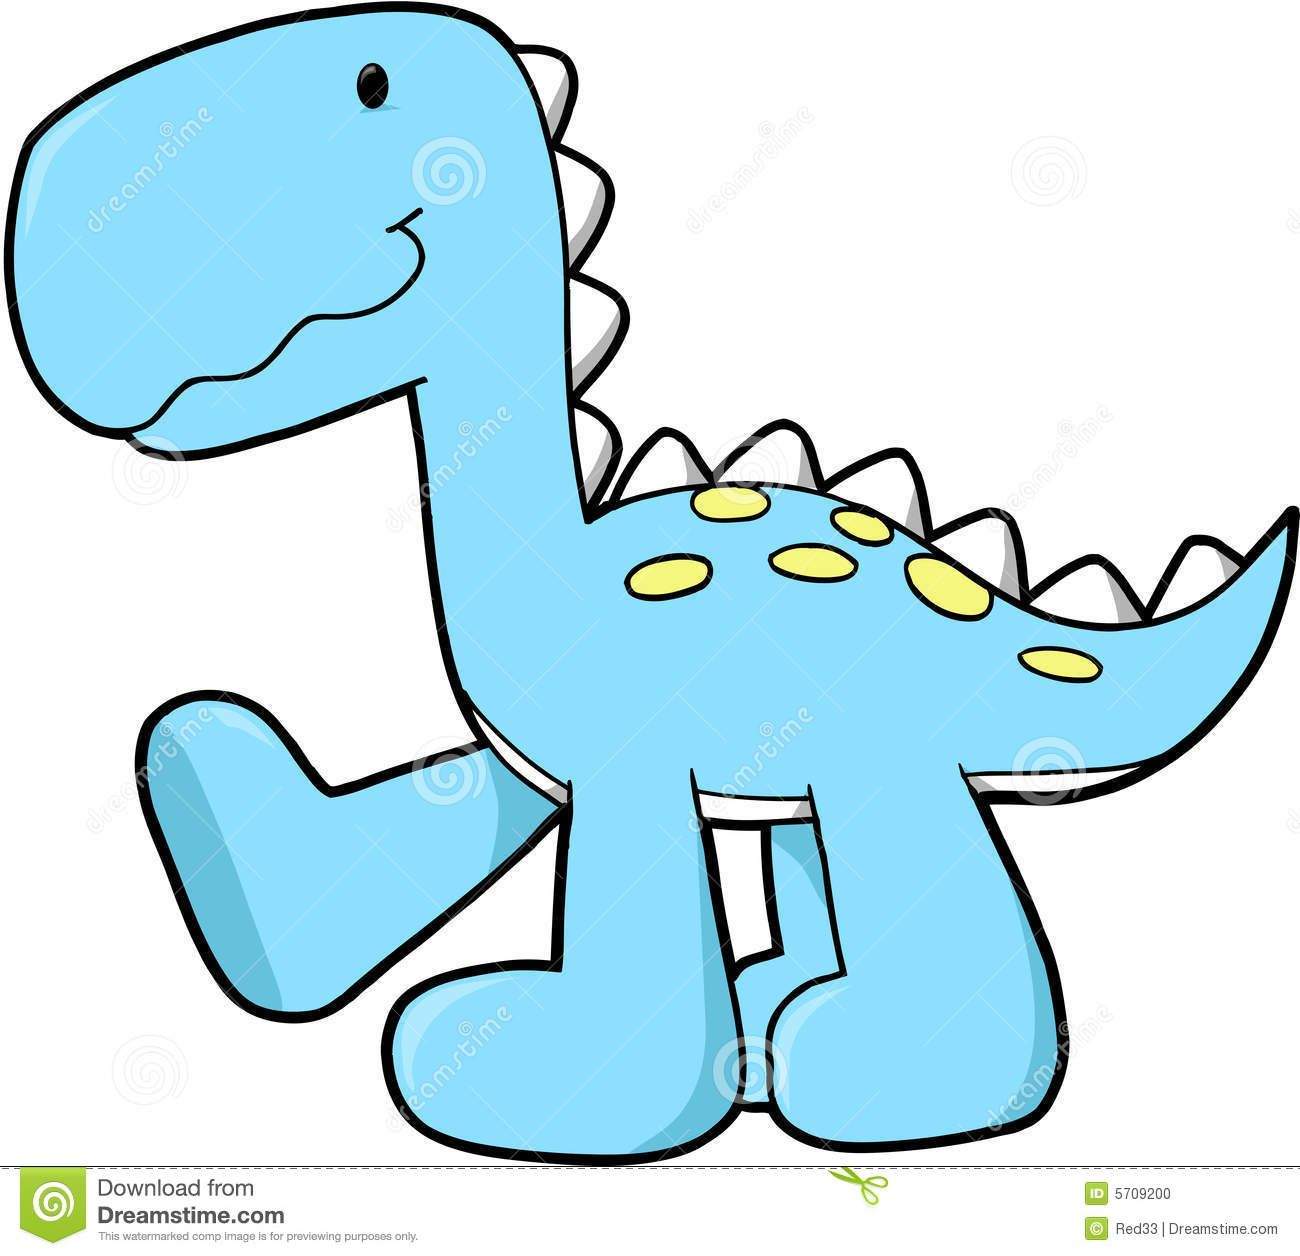 small resolution of cute dinosaur free clipart